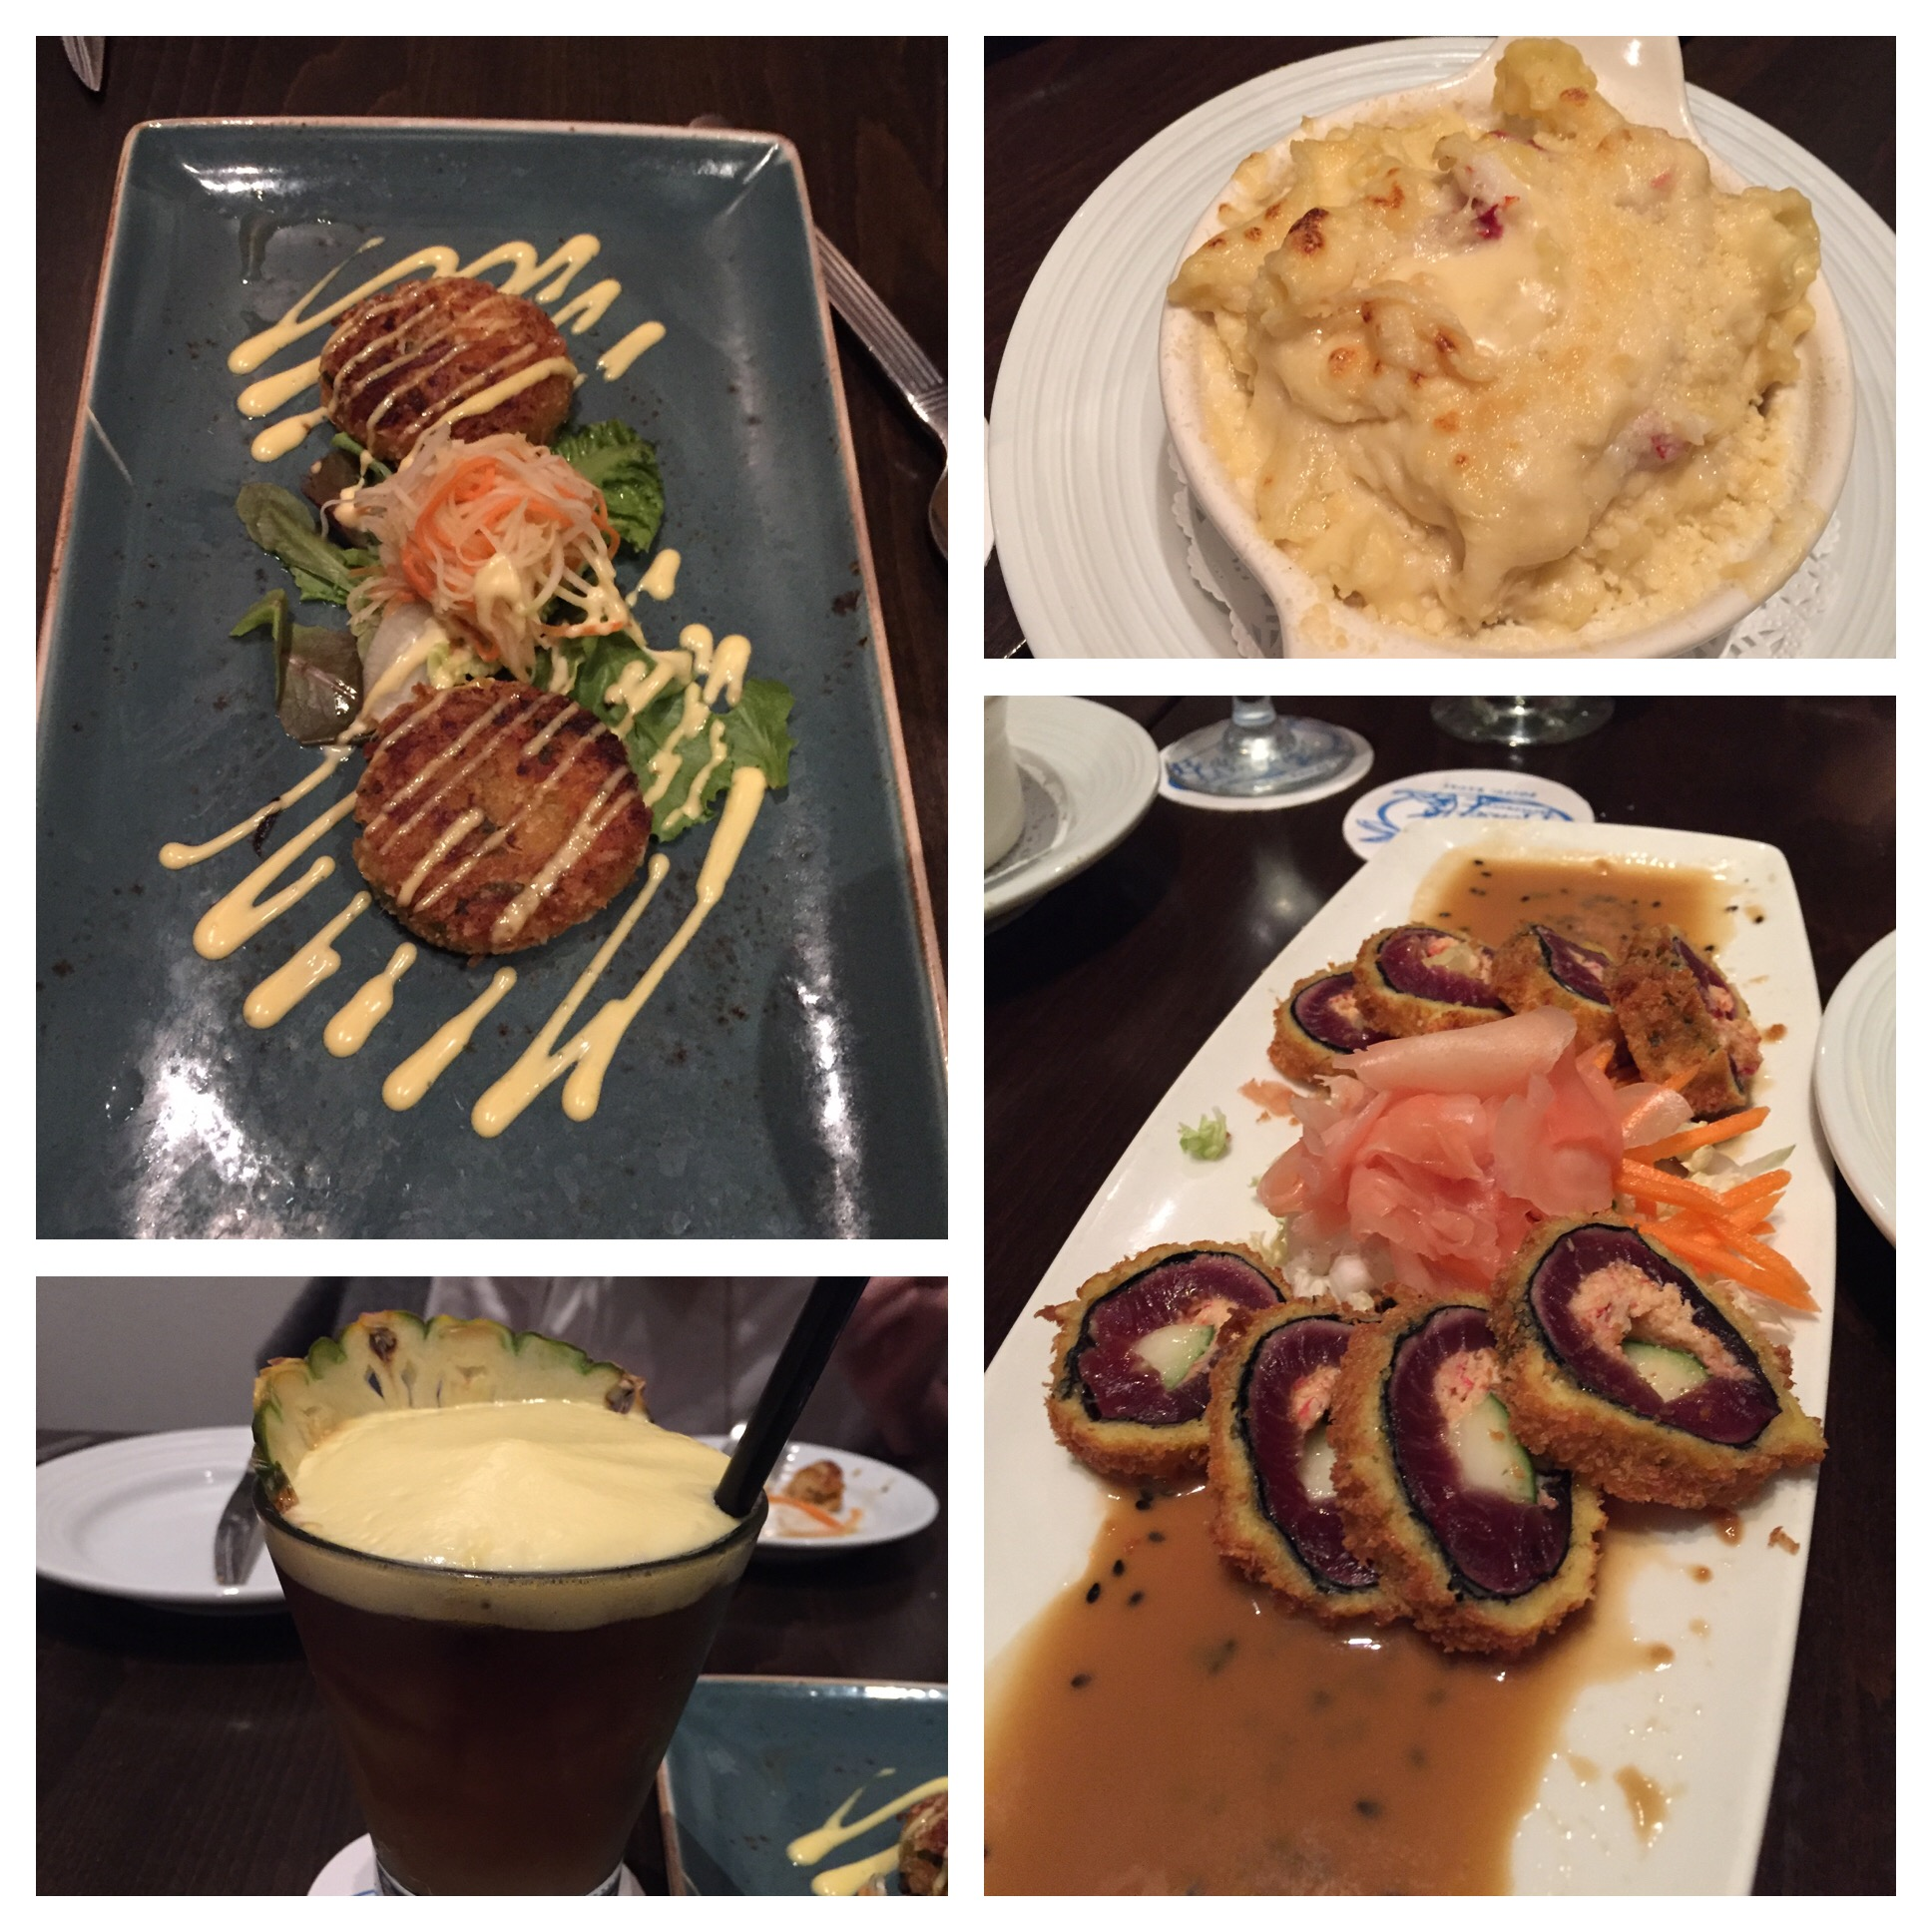 Appetizers - Thai Coconut Crab Cakes, Lobster Mac & Cheese, Crab Stuffed Ahi Roll and Anna's cool cocktail!